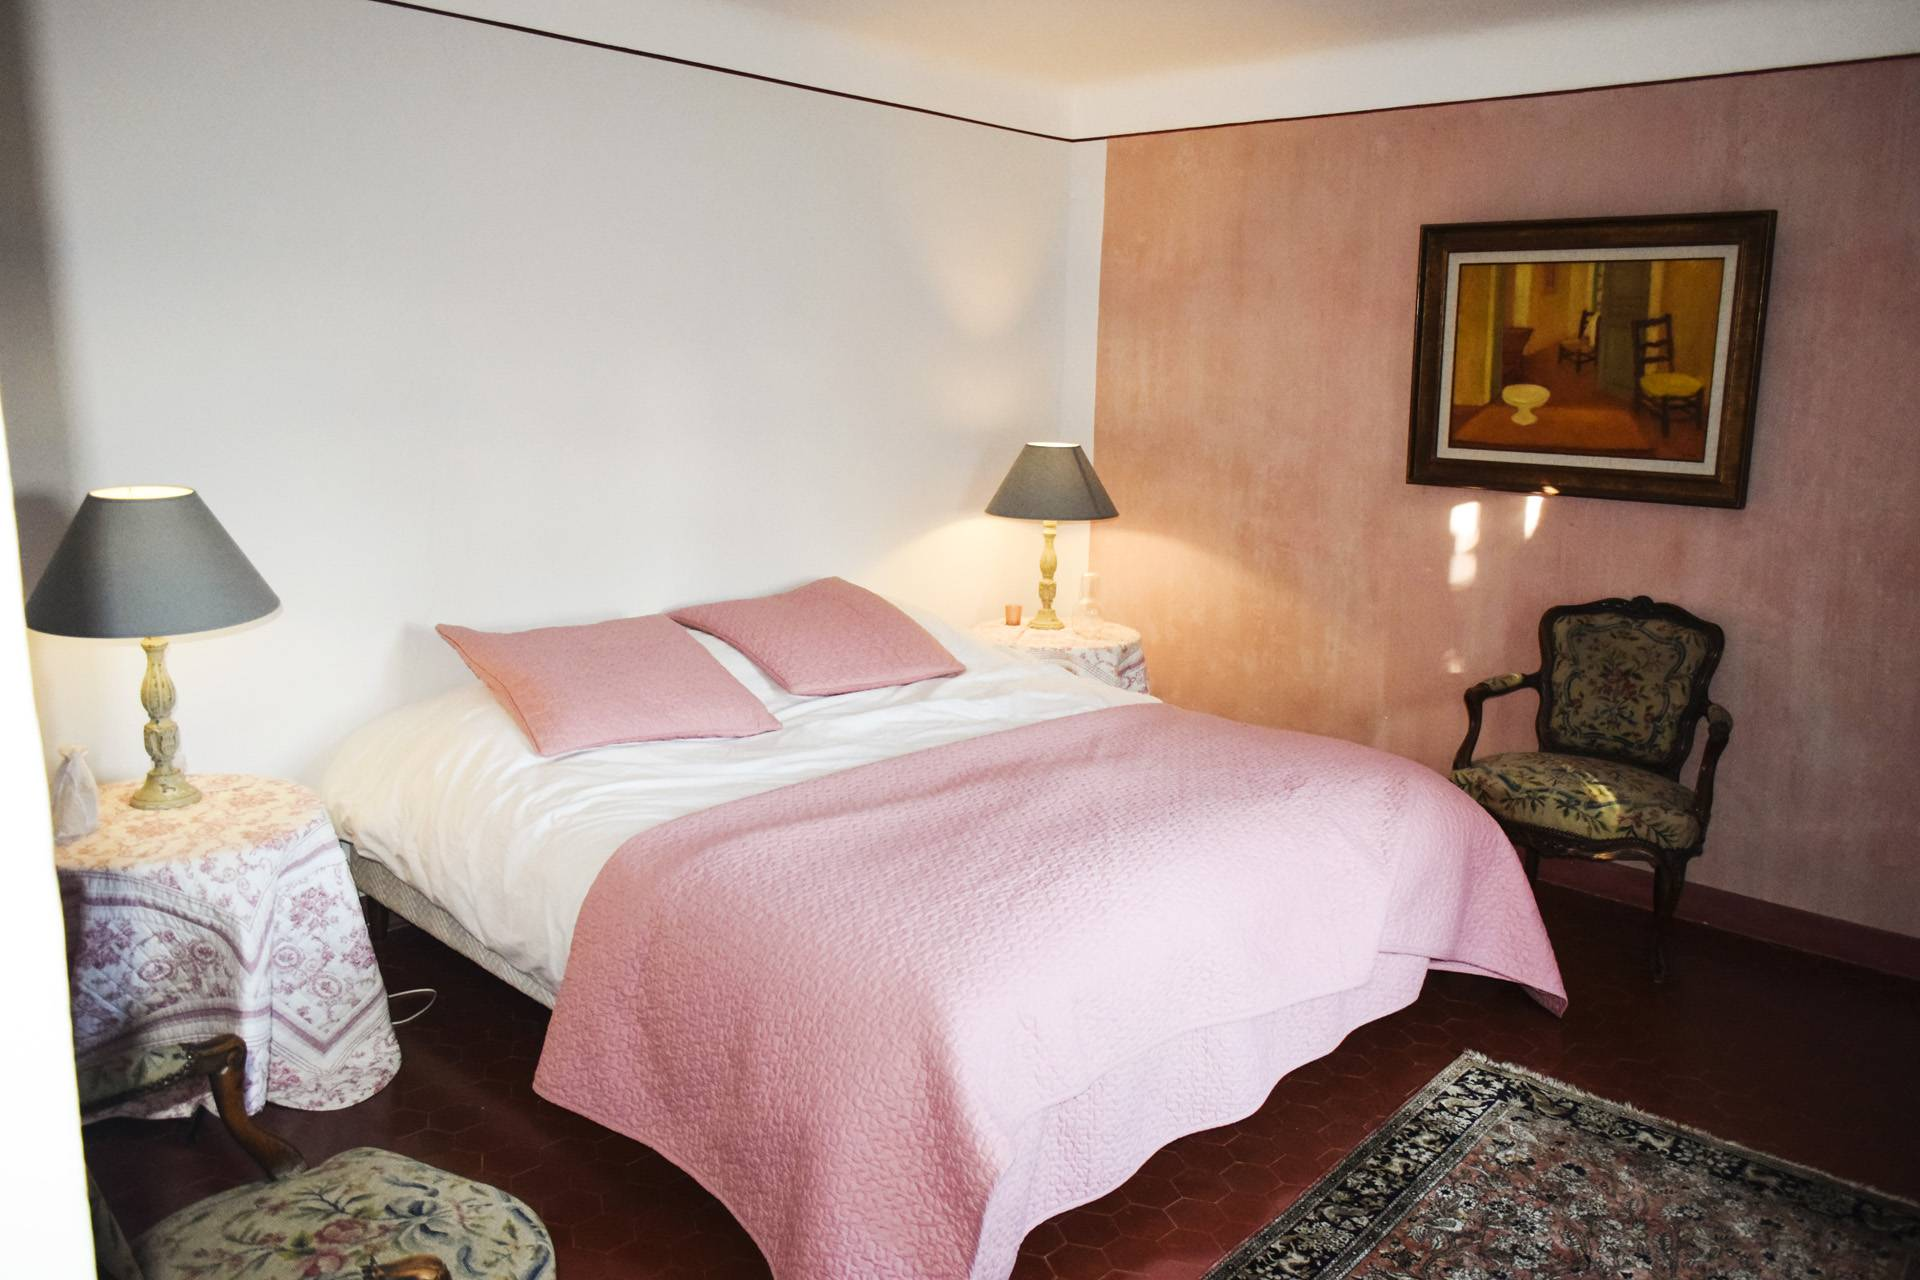 bedroom 1 renovated country house on 8 ha, swimming pool, caretaker's house, aups var, provence